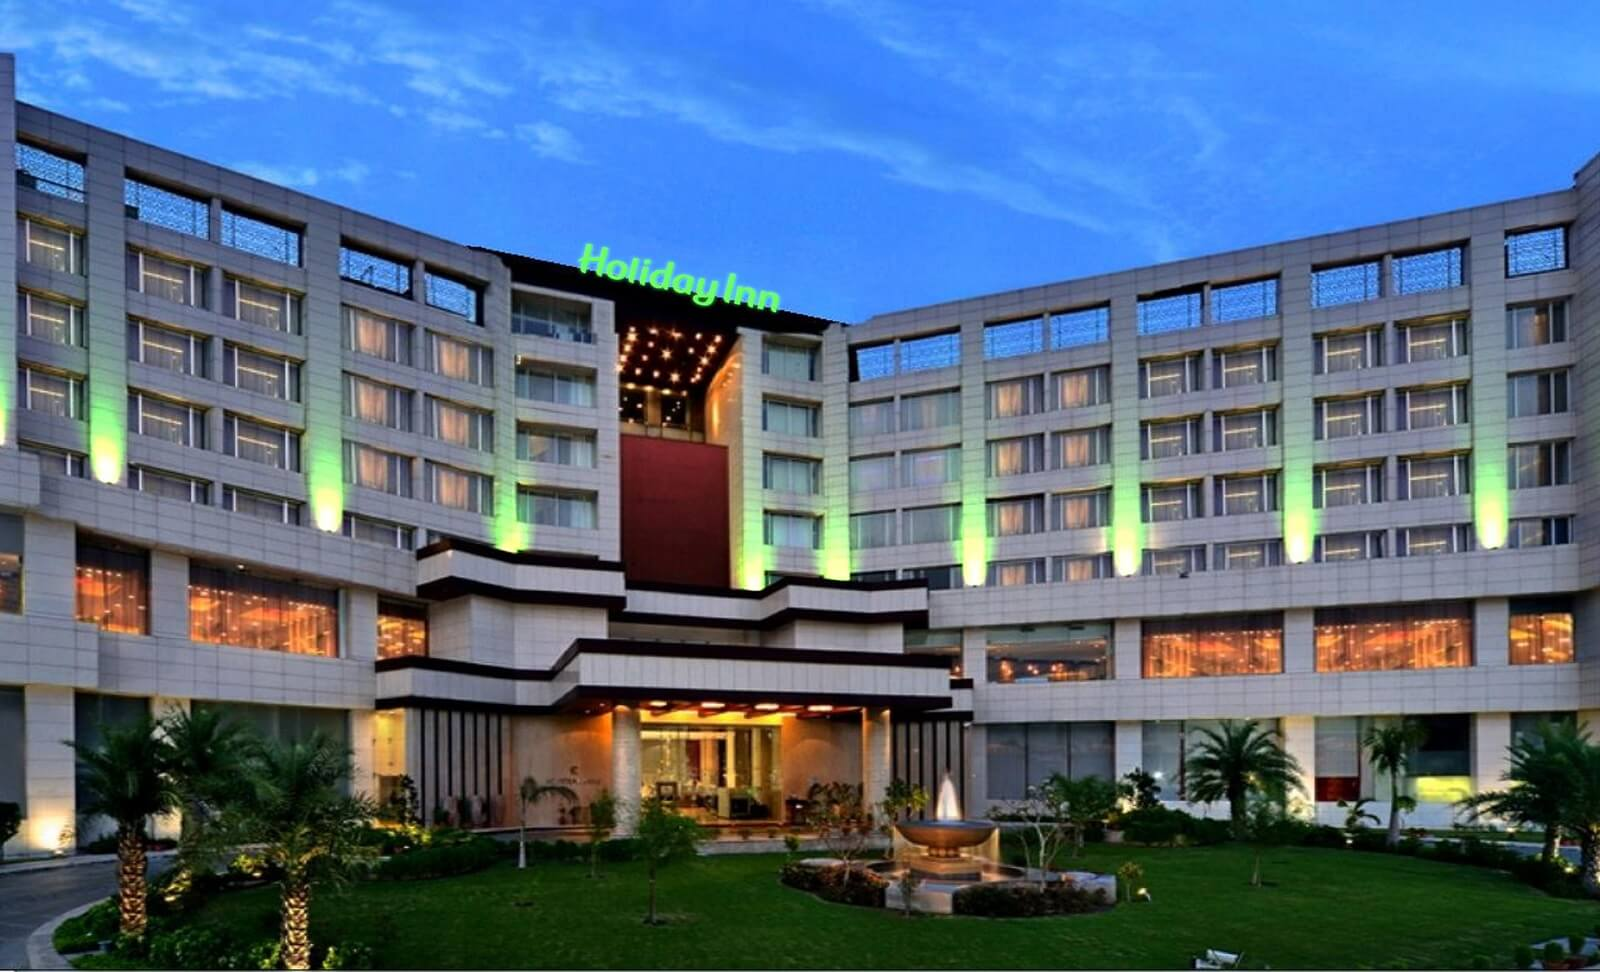 Tenth Holiday Inn in India Opens in Chandigarh